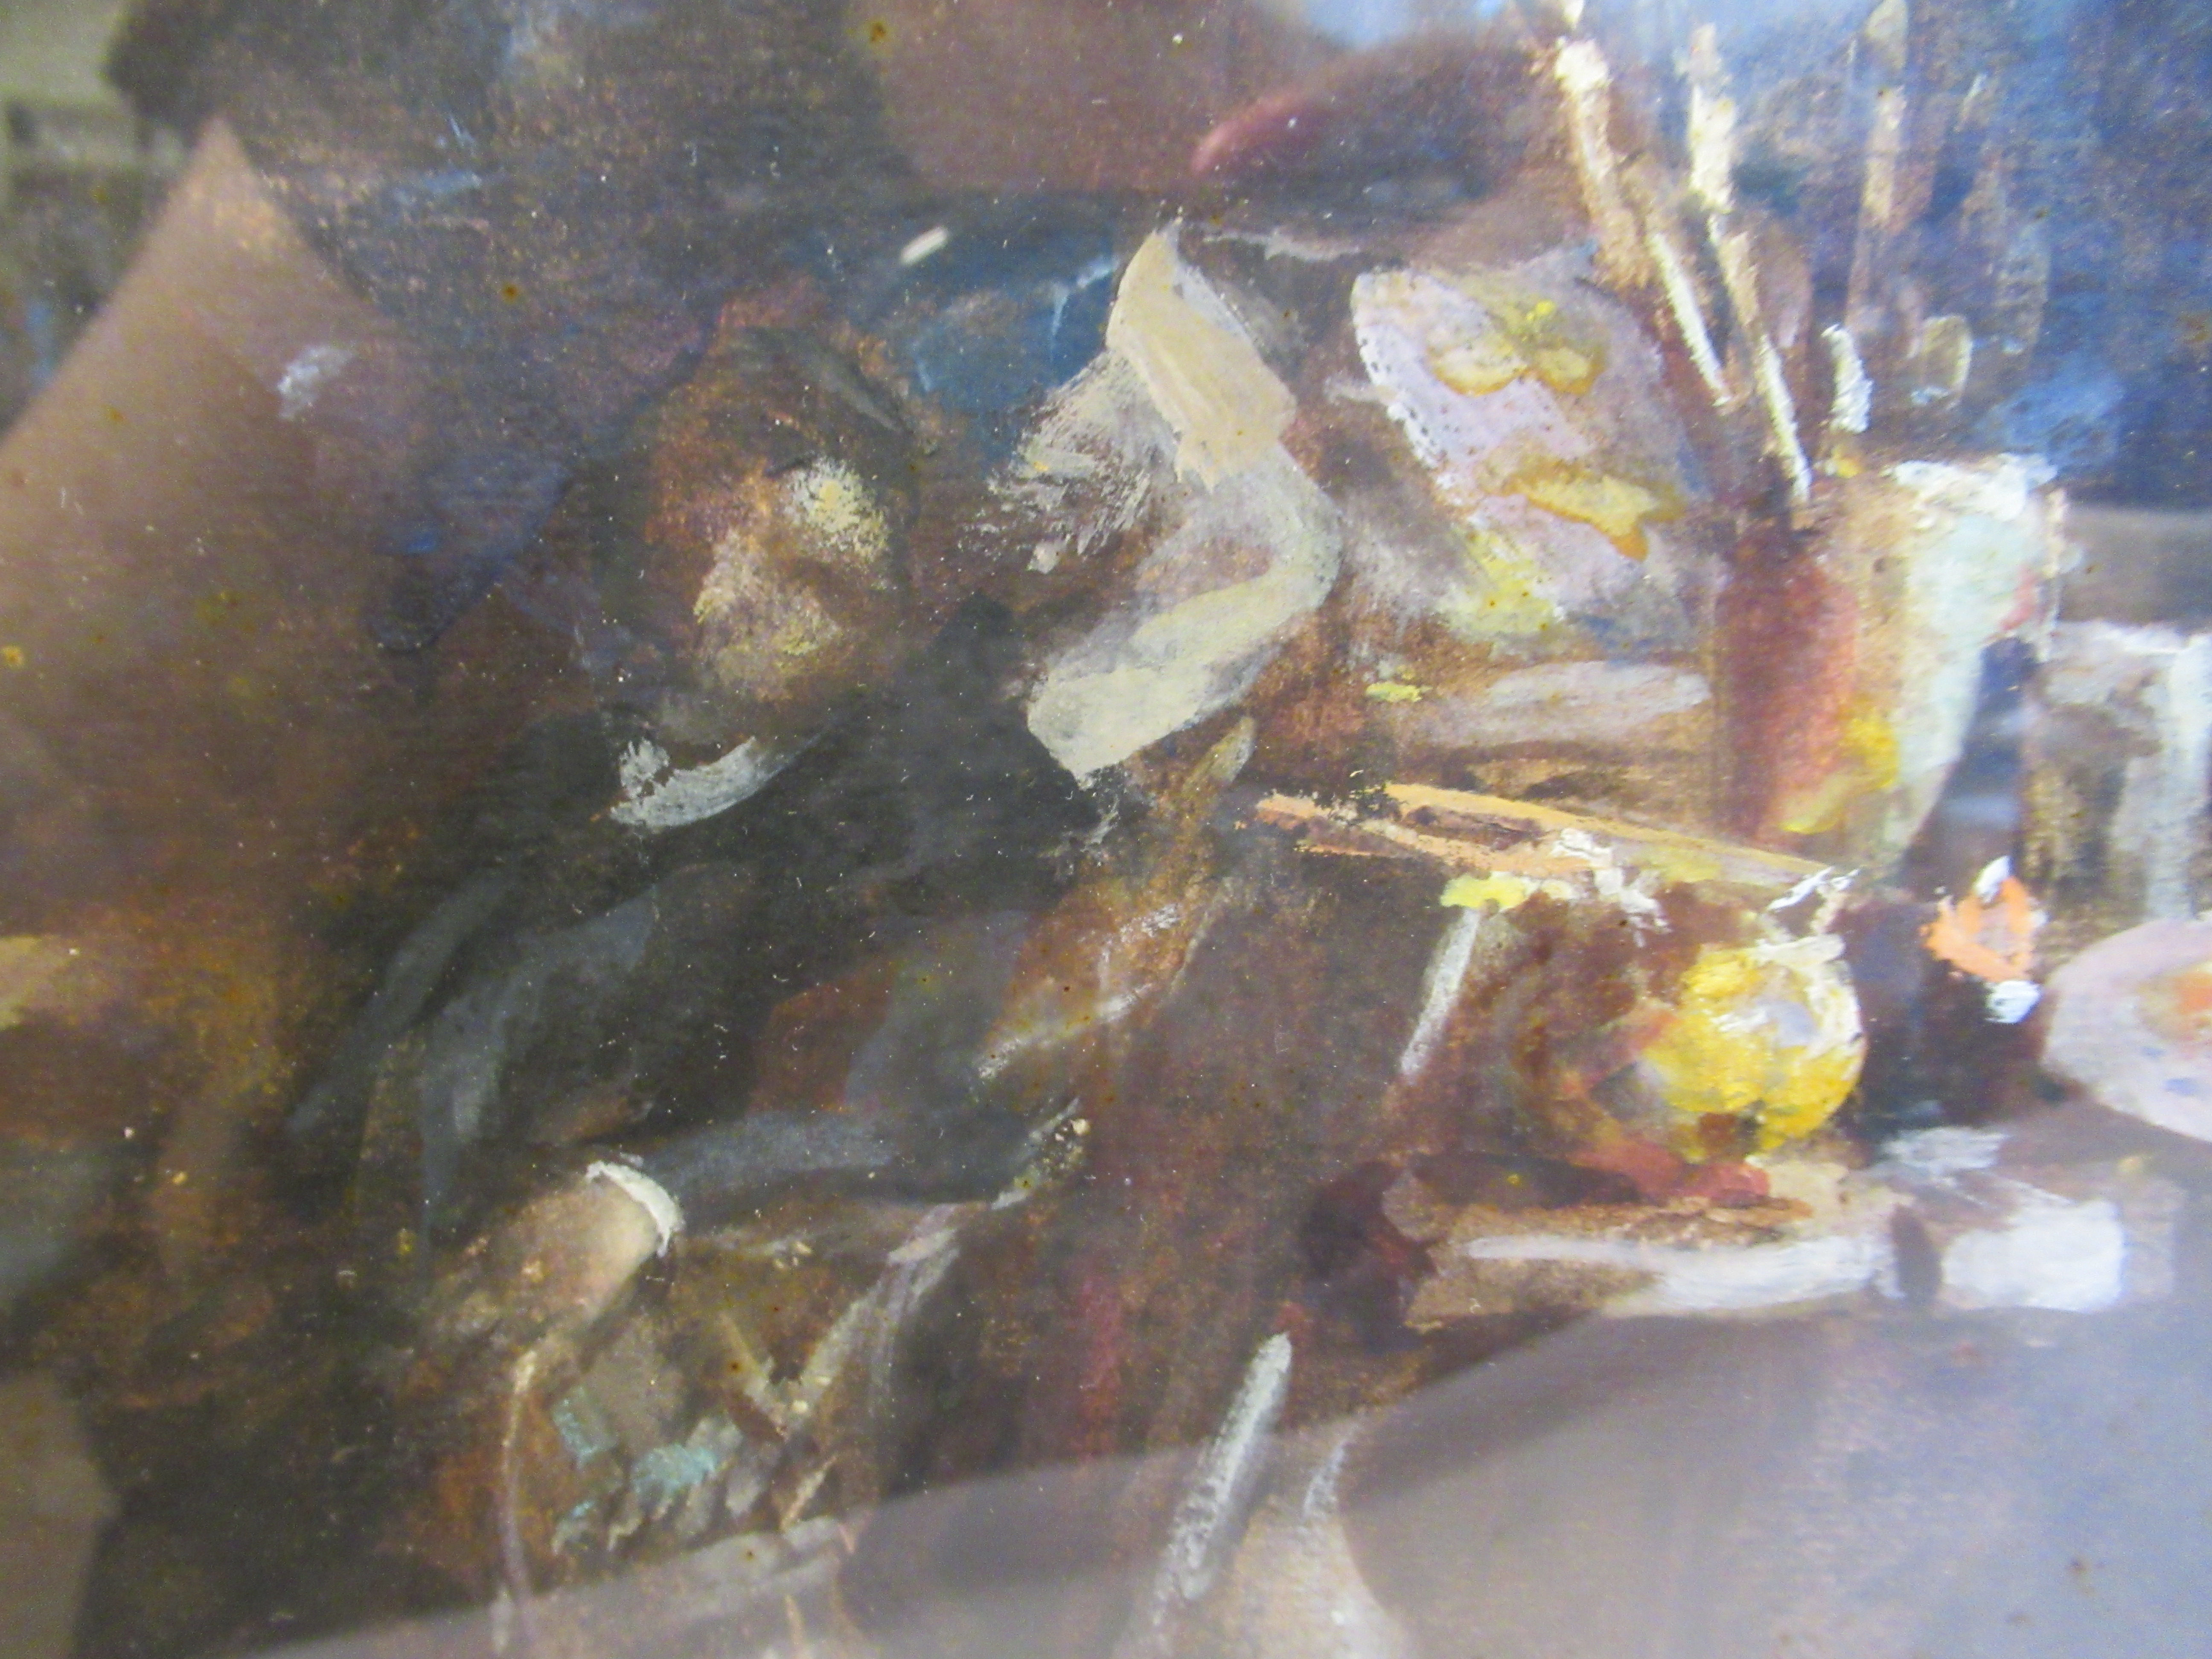 TW Morley - an interior studio scene with an artist resting in an armchair watercolour bears a - Image 5 of 7